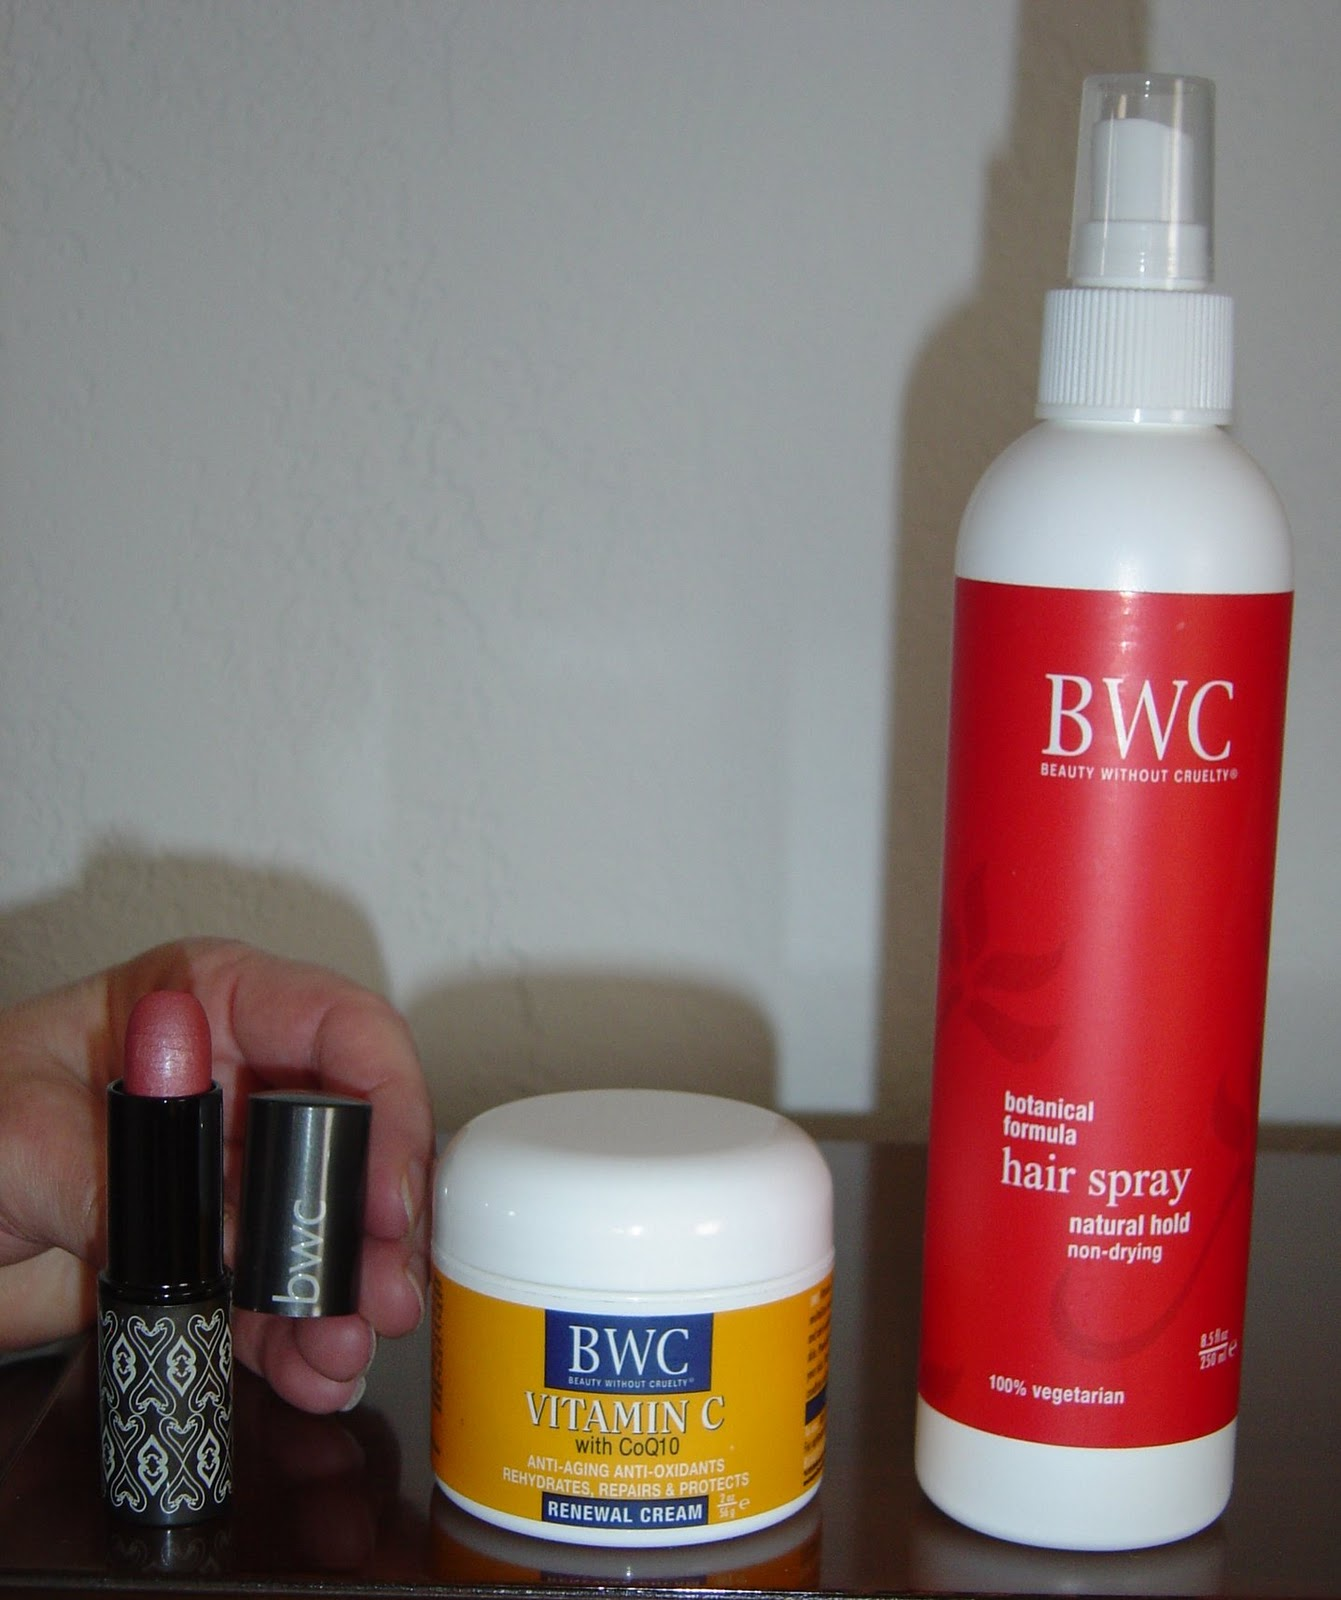 Beauty Without Cruelty Products lipstick, moisturizer and hairspray